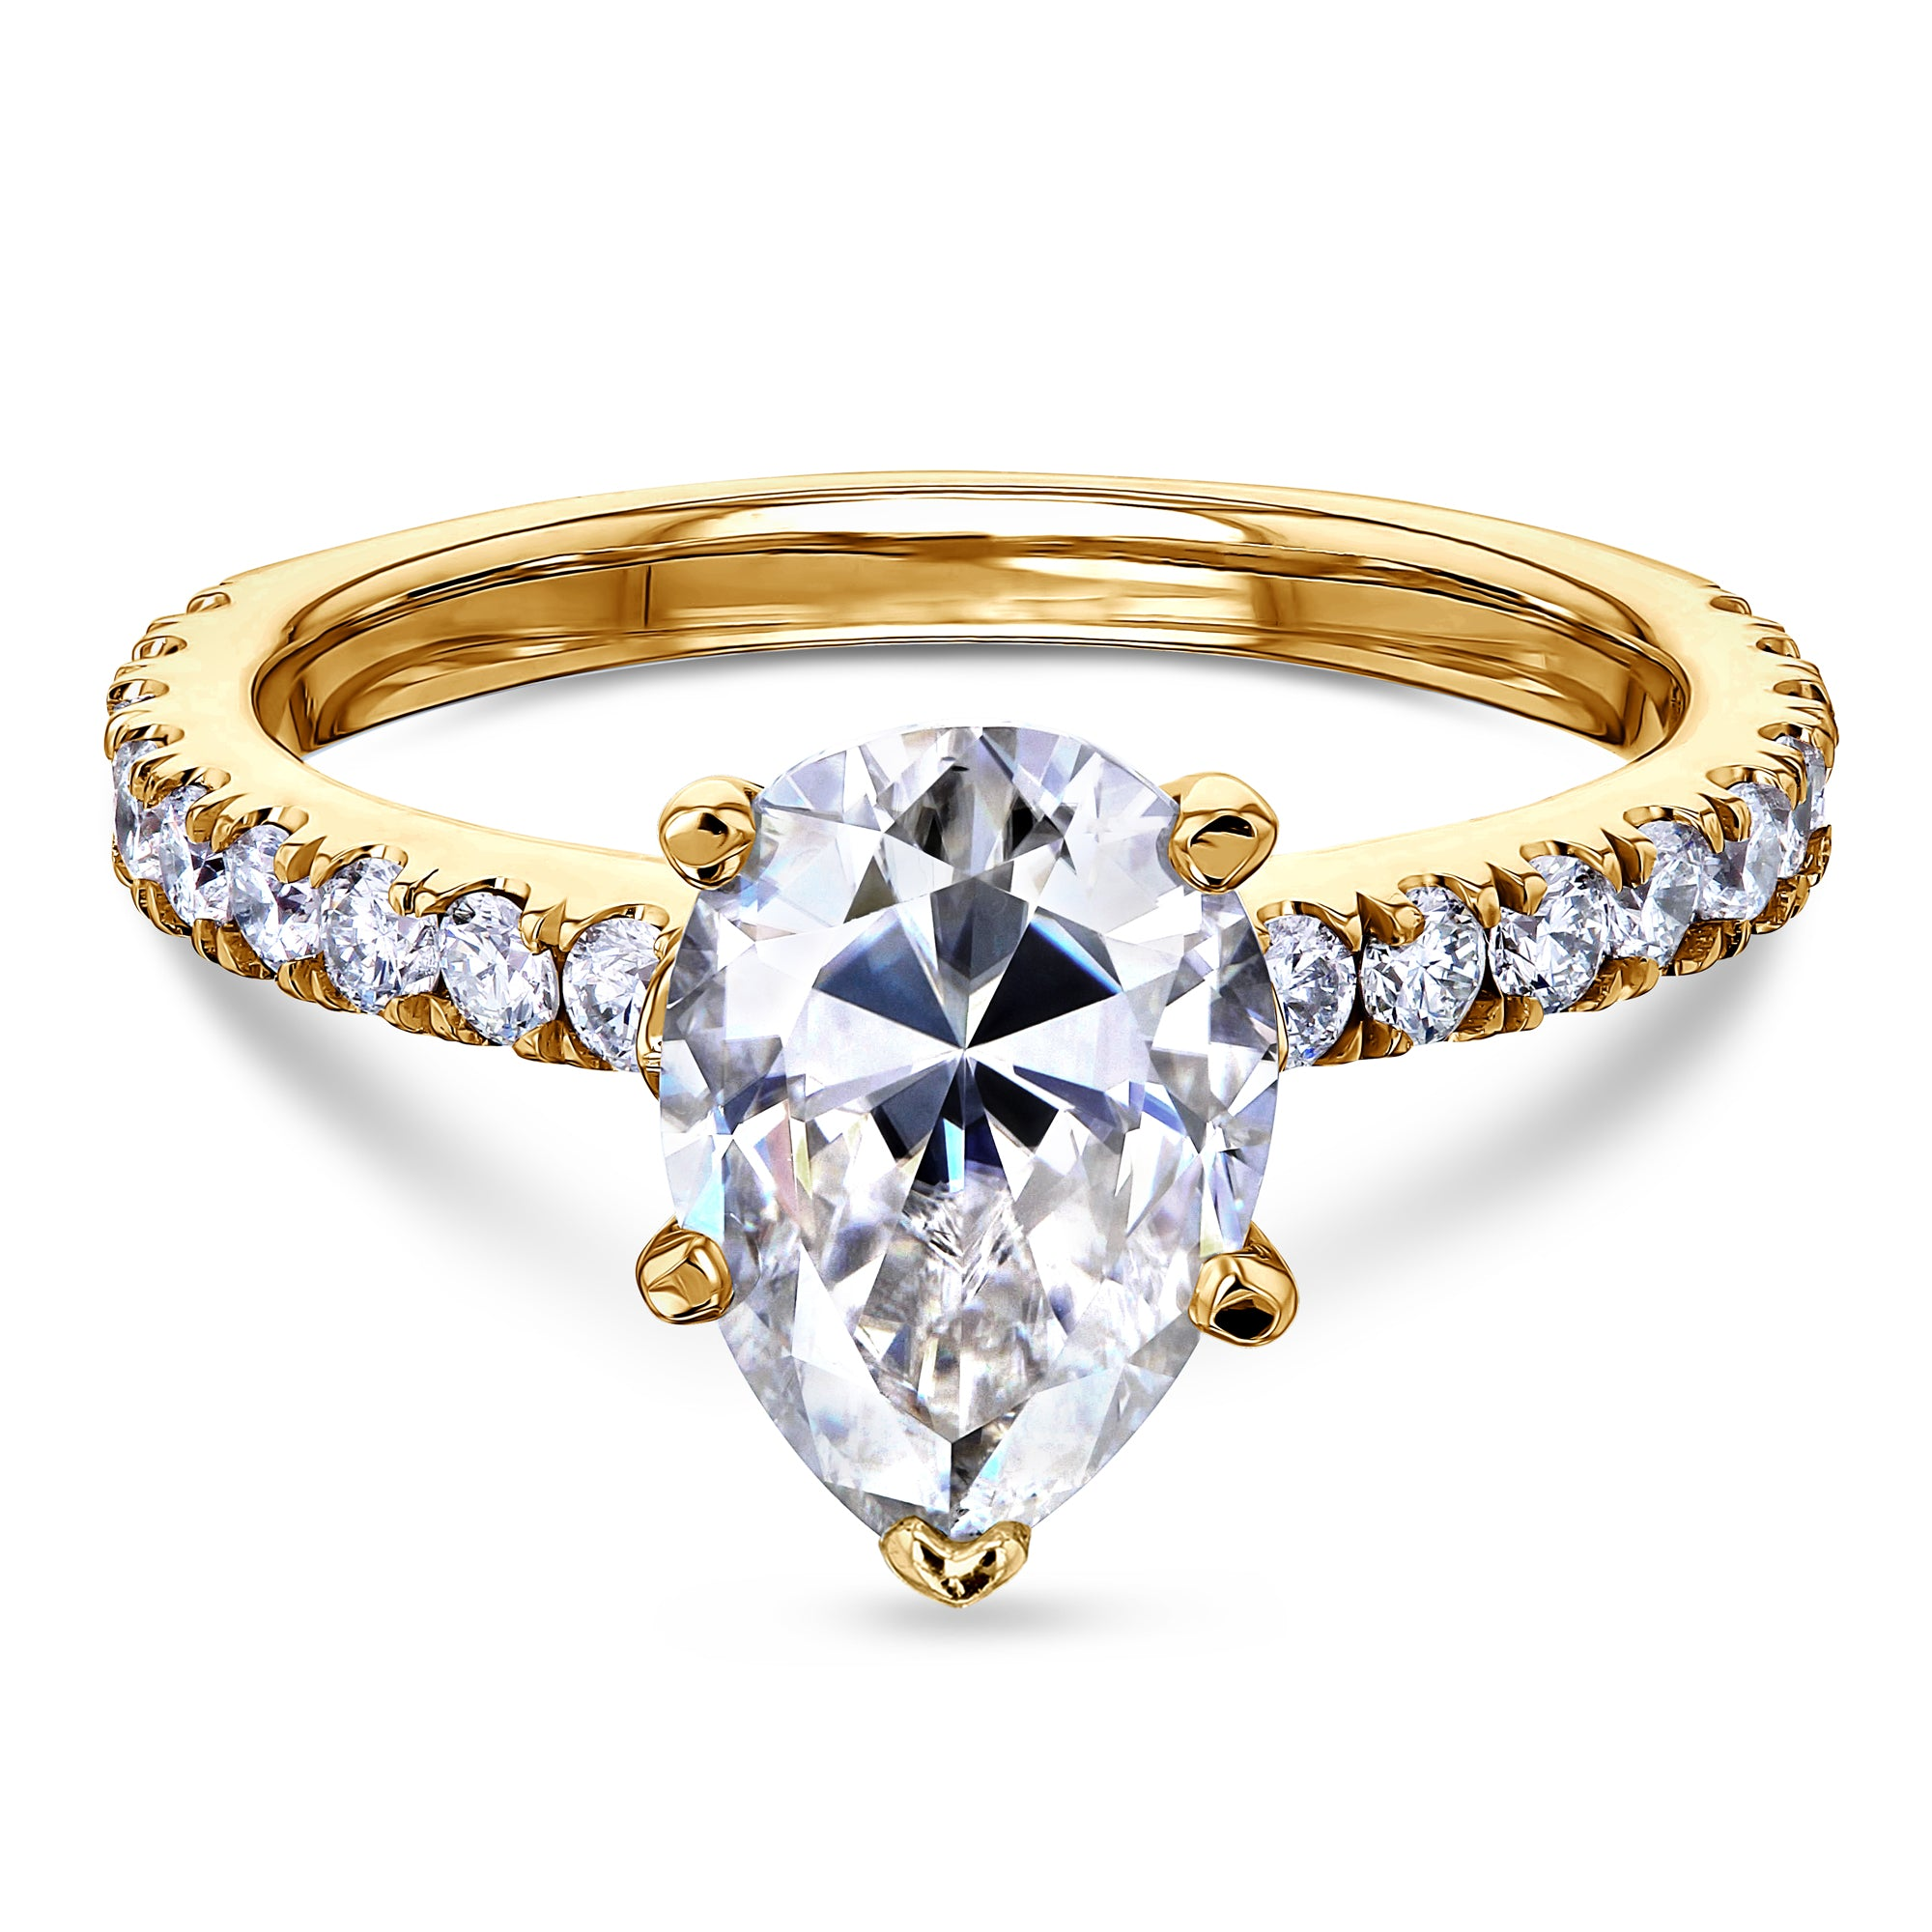 Discounts 2.1ct Pear Moissanite Ring - yellow-gold 9.5 Forever One D-E-F